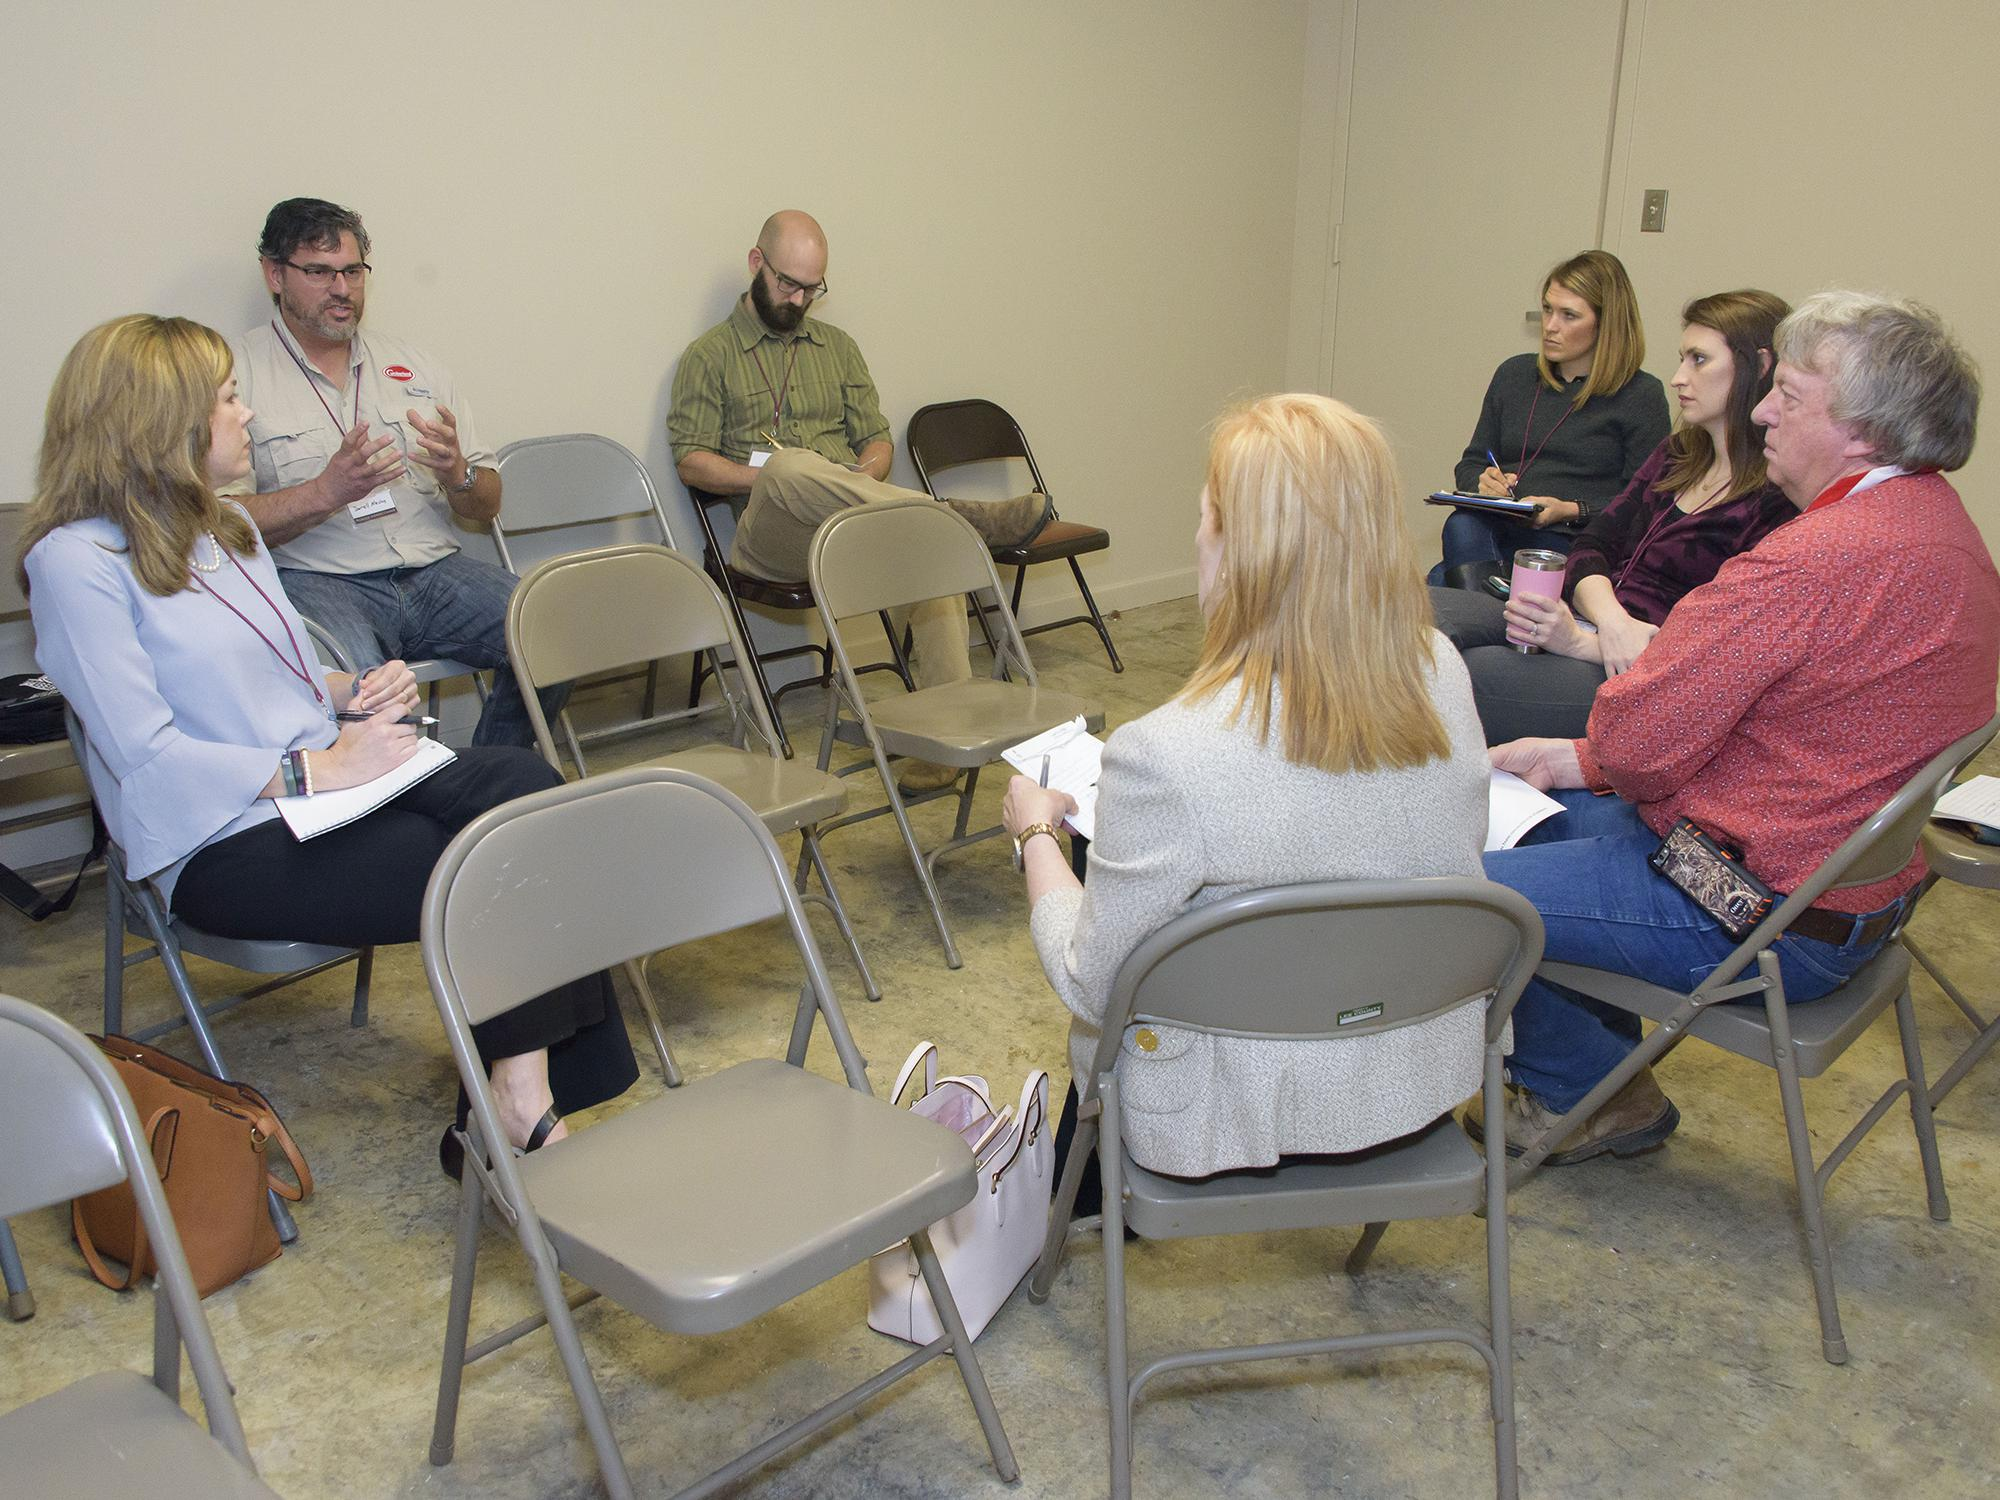 Man in glasses speaking to a group of people sitting in a circle.